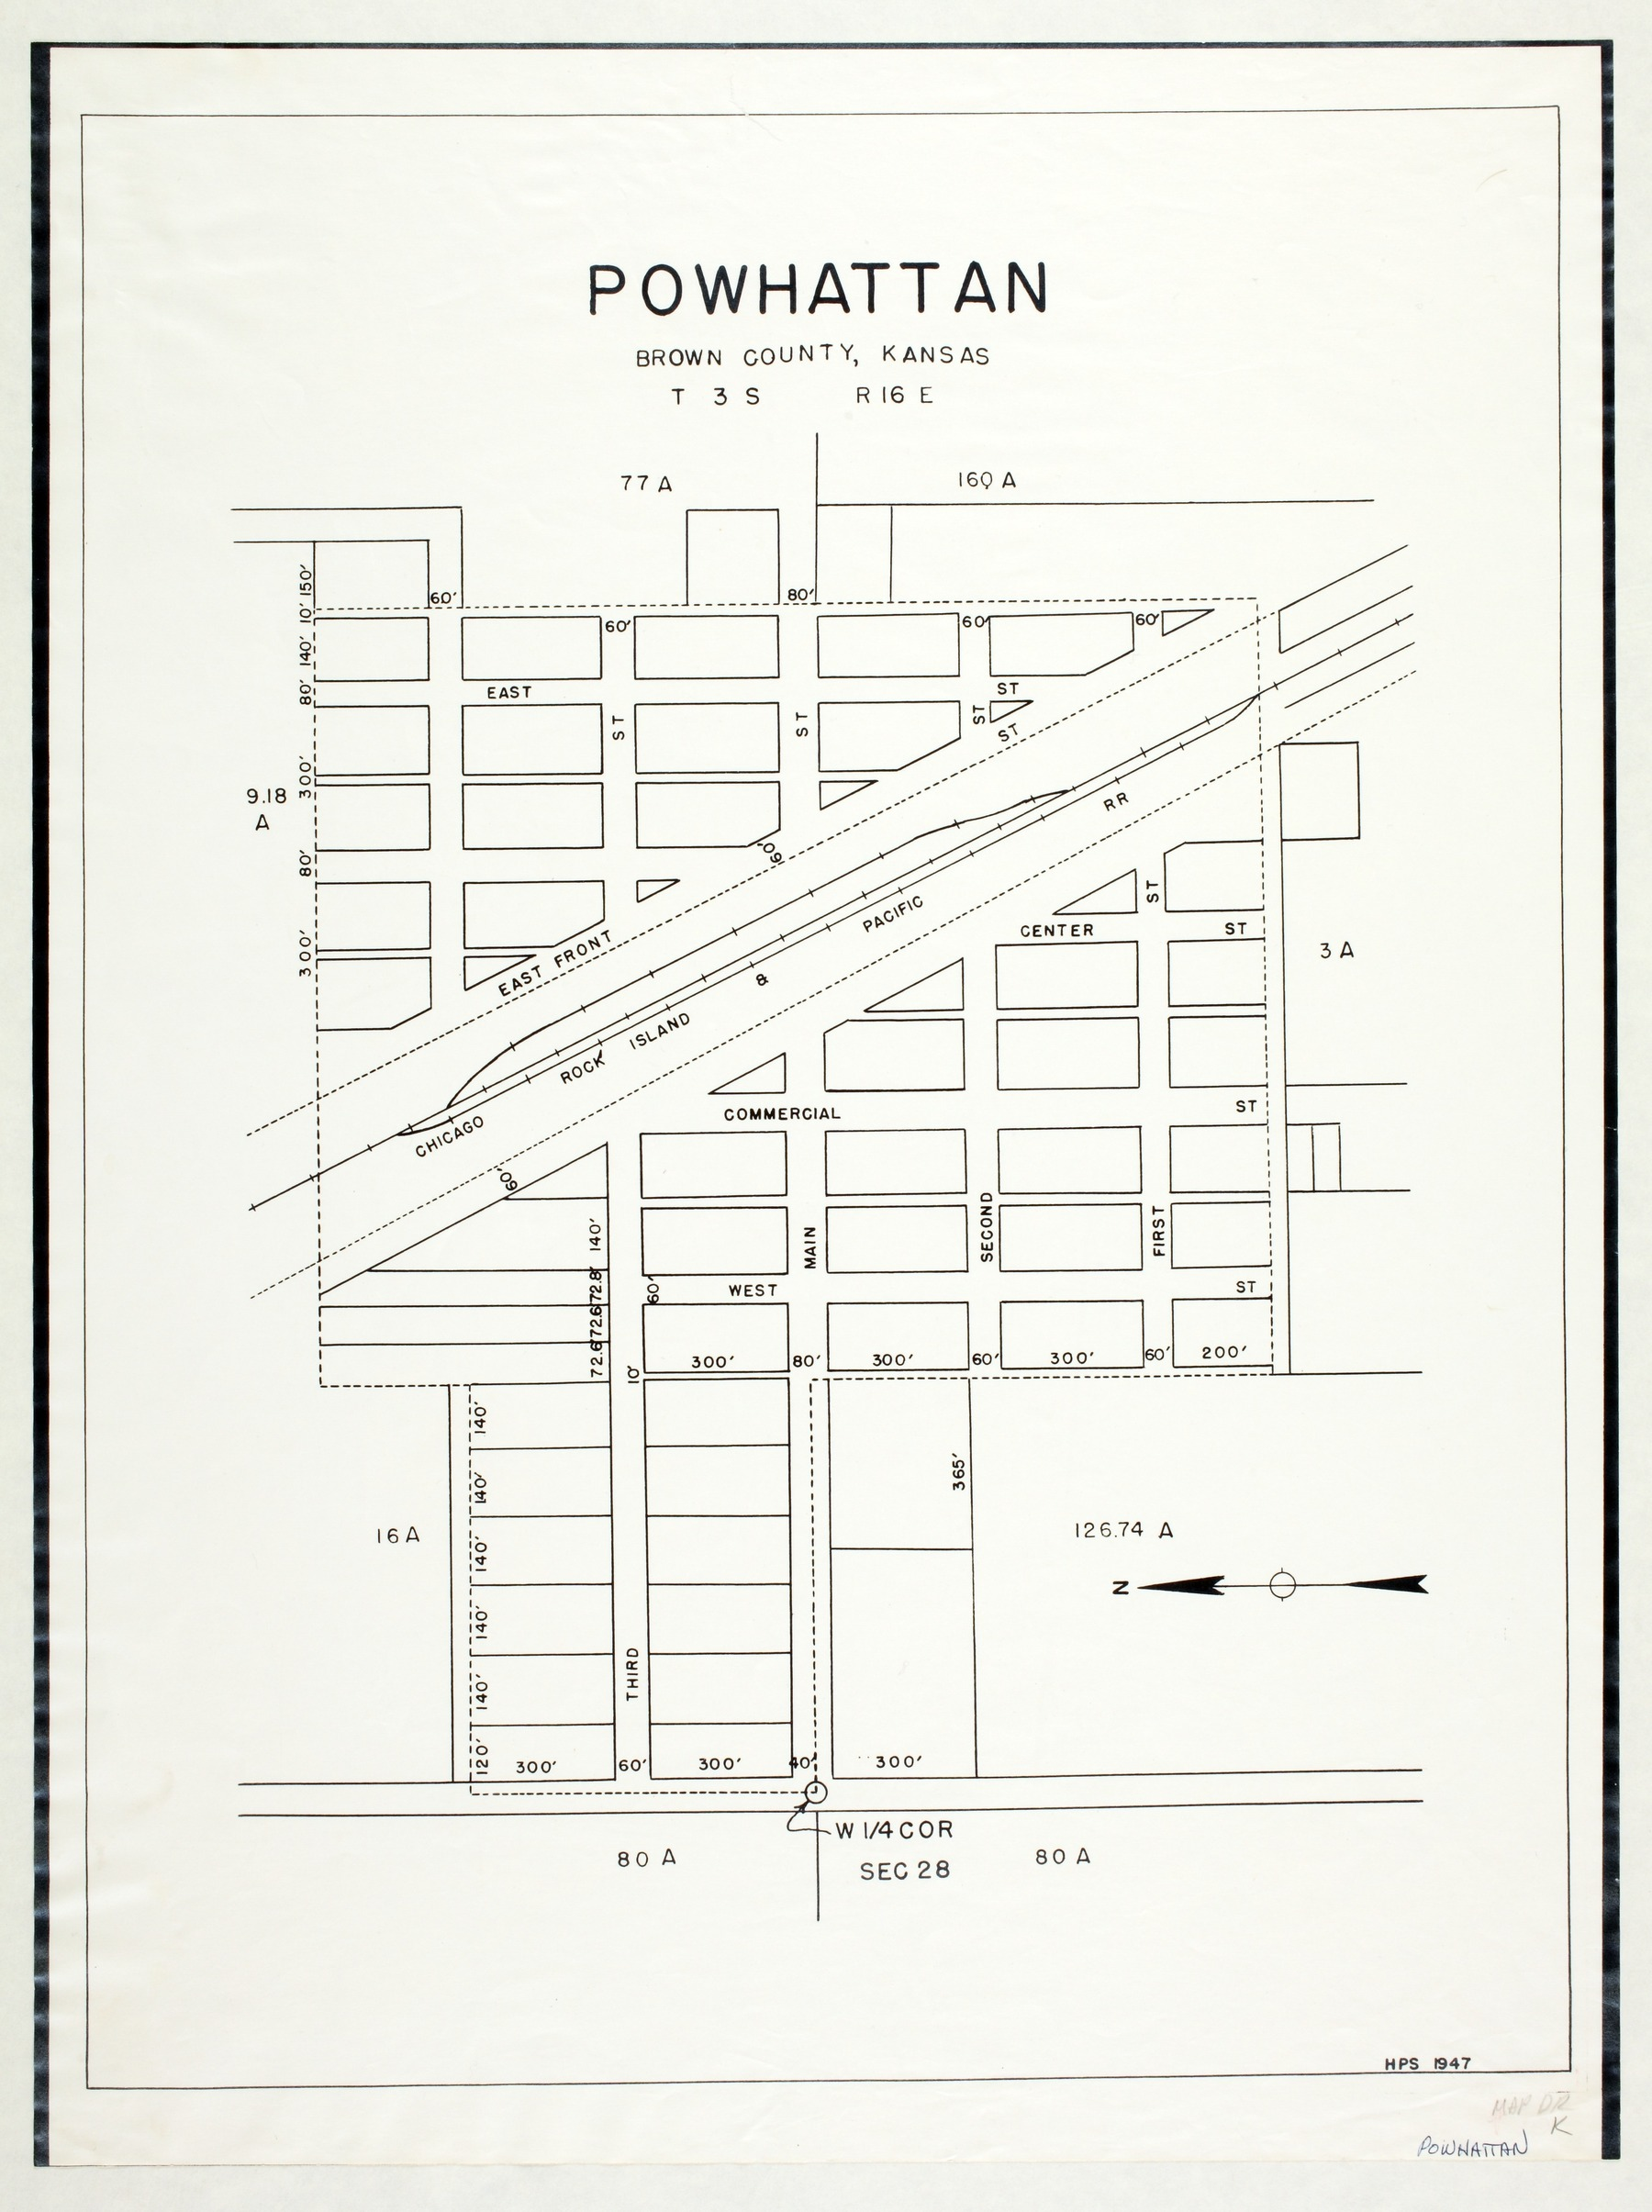 Powhattan, Brown County, Kansas